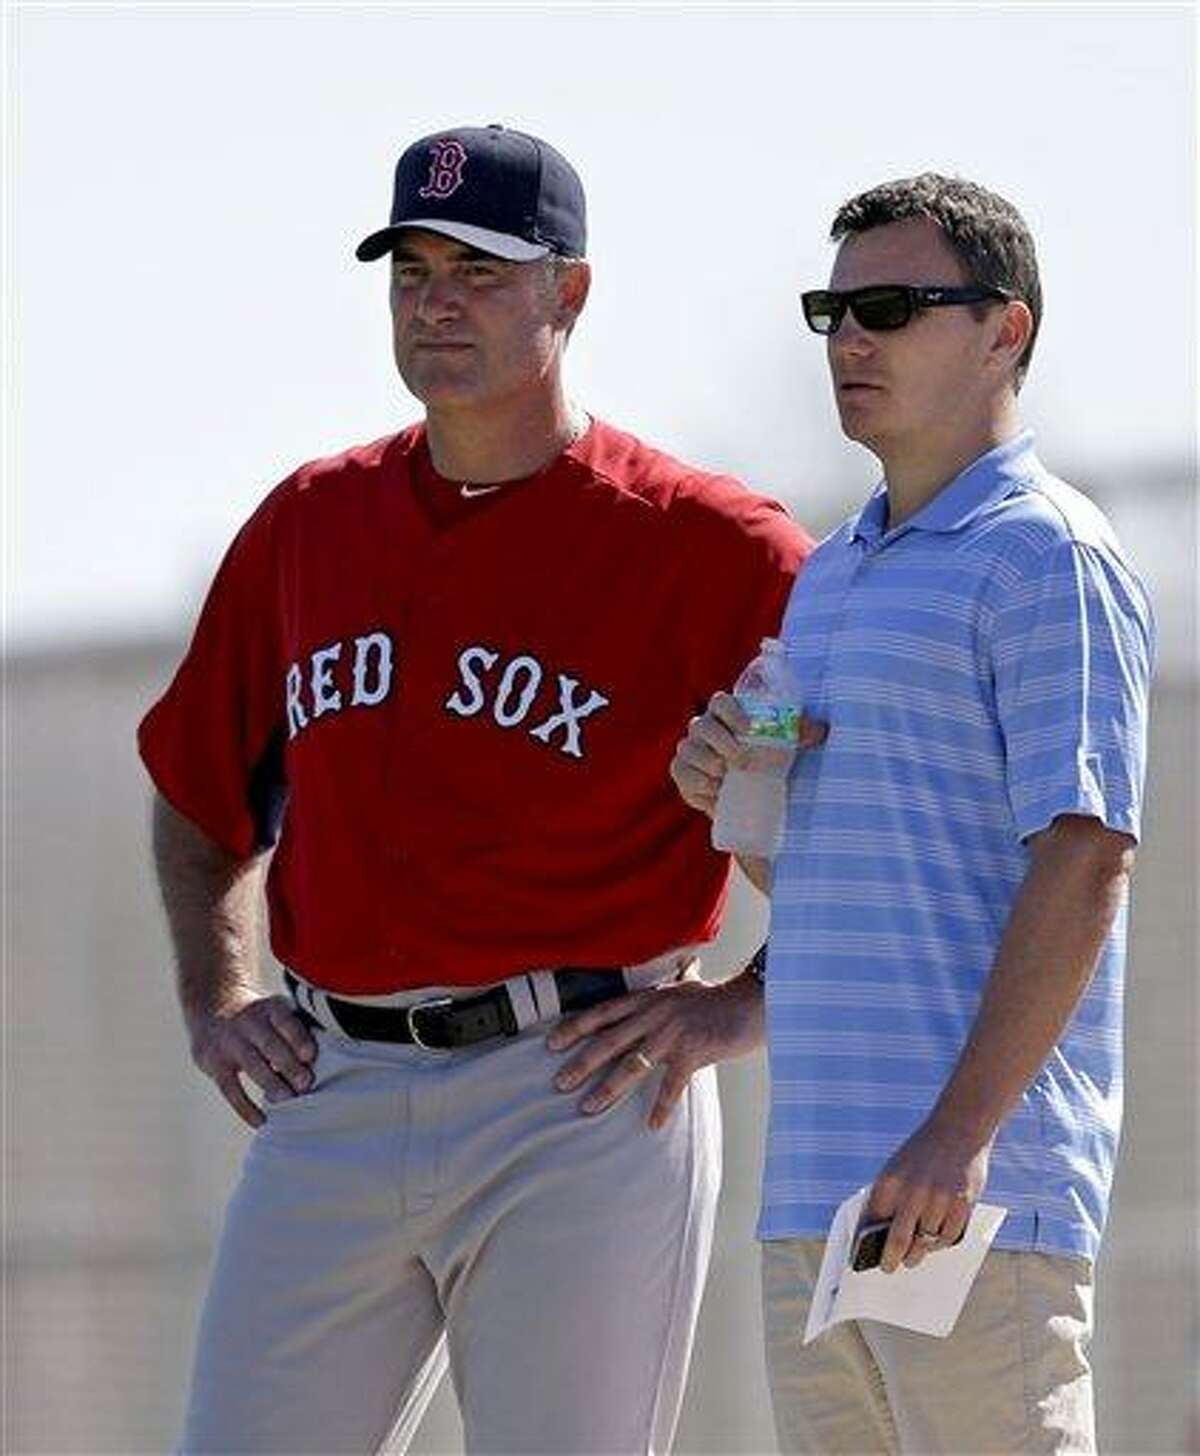 Boston Red Sox manager John Farrell, left, and general manager Ben Cherington, watch as Alfredo Aceves pitches batting practice during a spring training baseball workout, Wednesday, Feb. 20, 2013, in Fort Myers, Fla. (AP Photo/David Goldman)